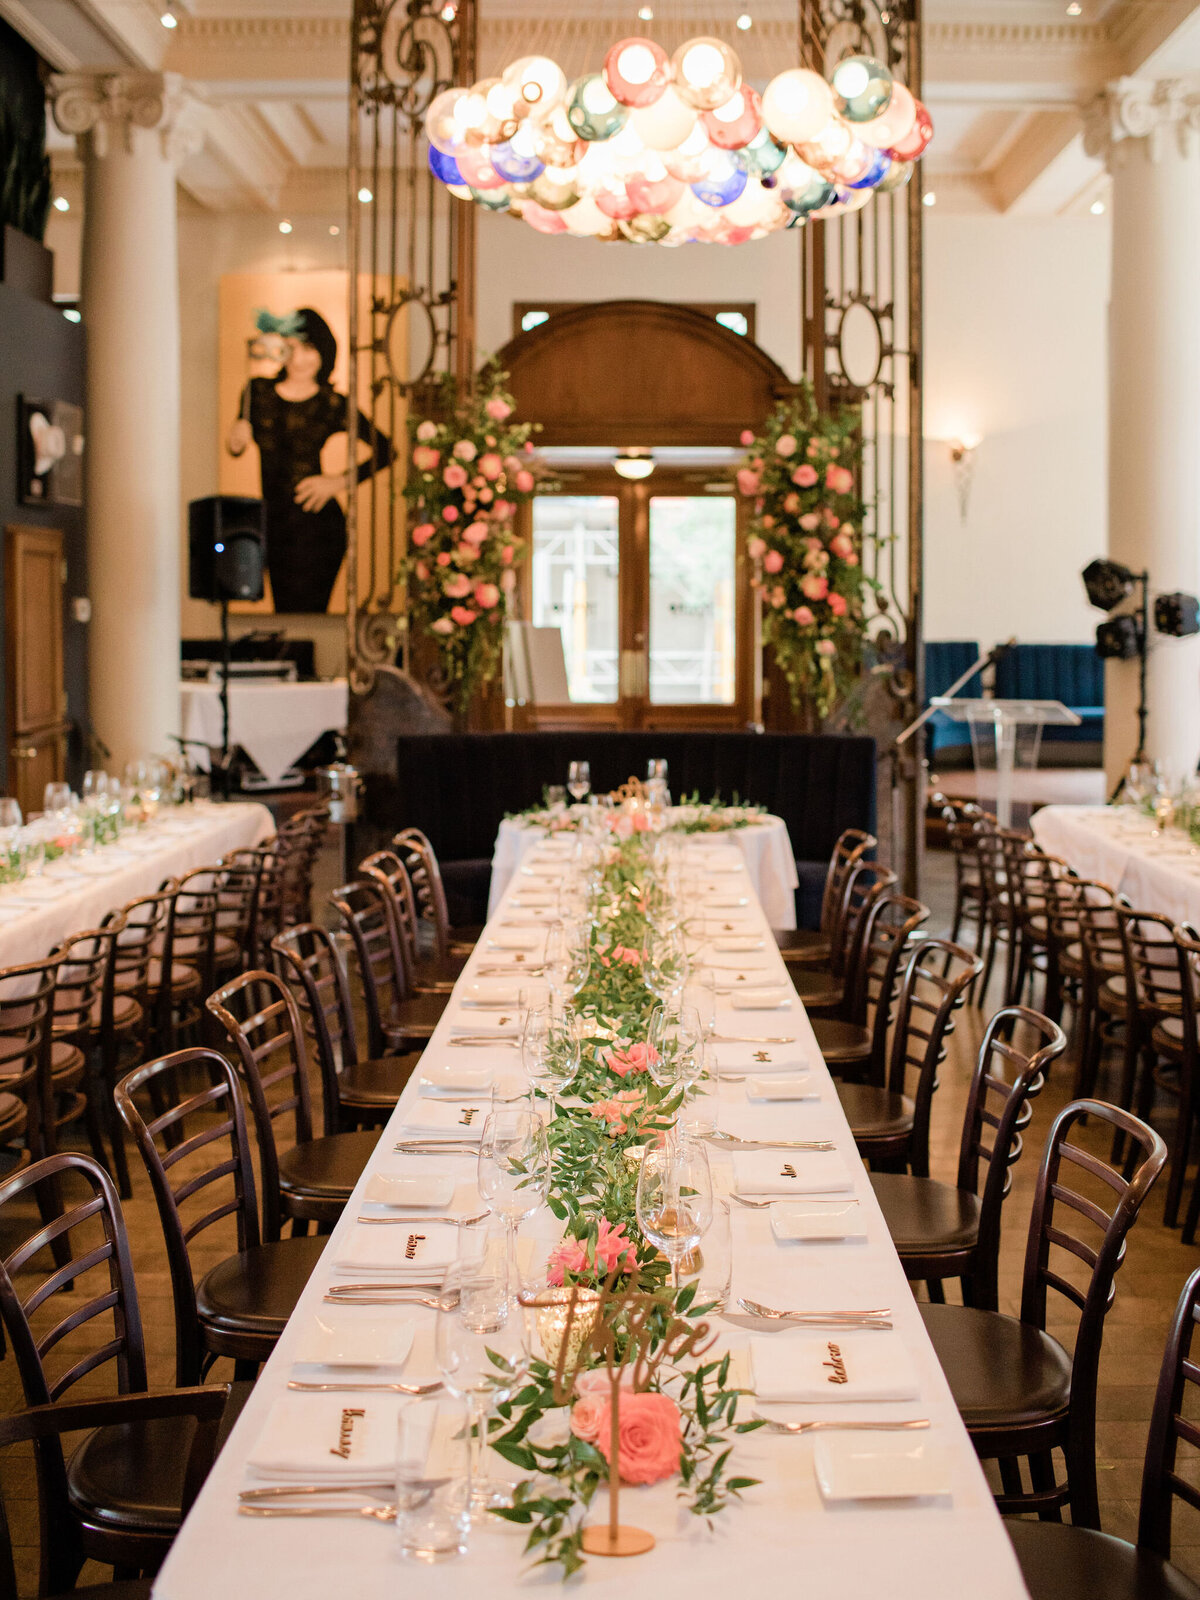 Teatro - Bronte Bride Vendor Guide - Venue2